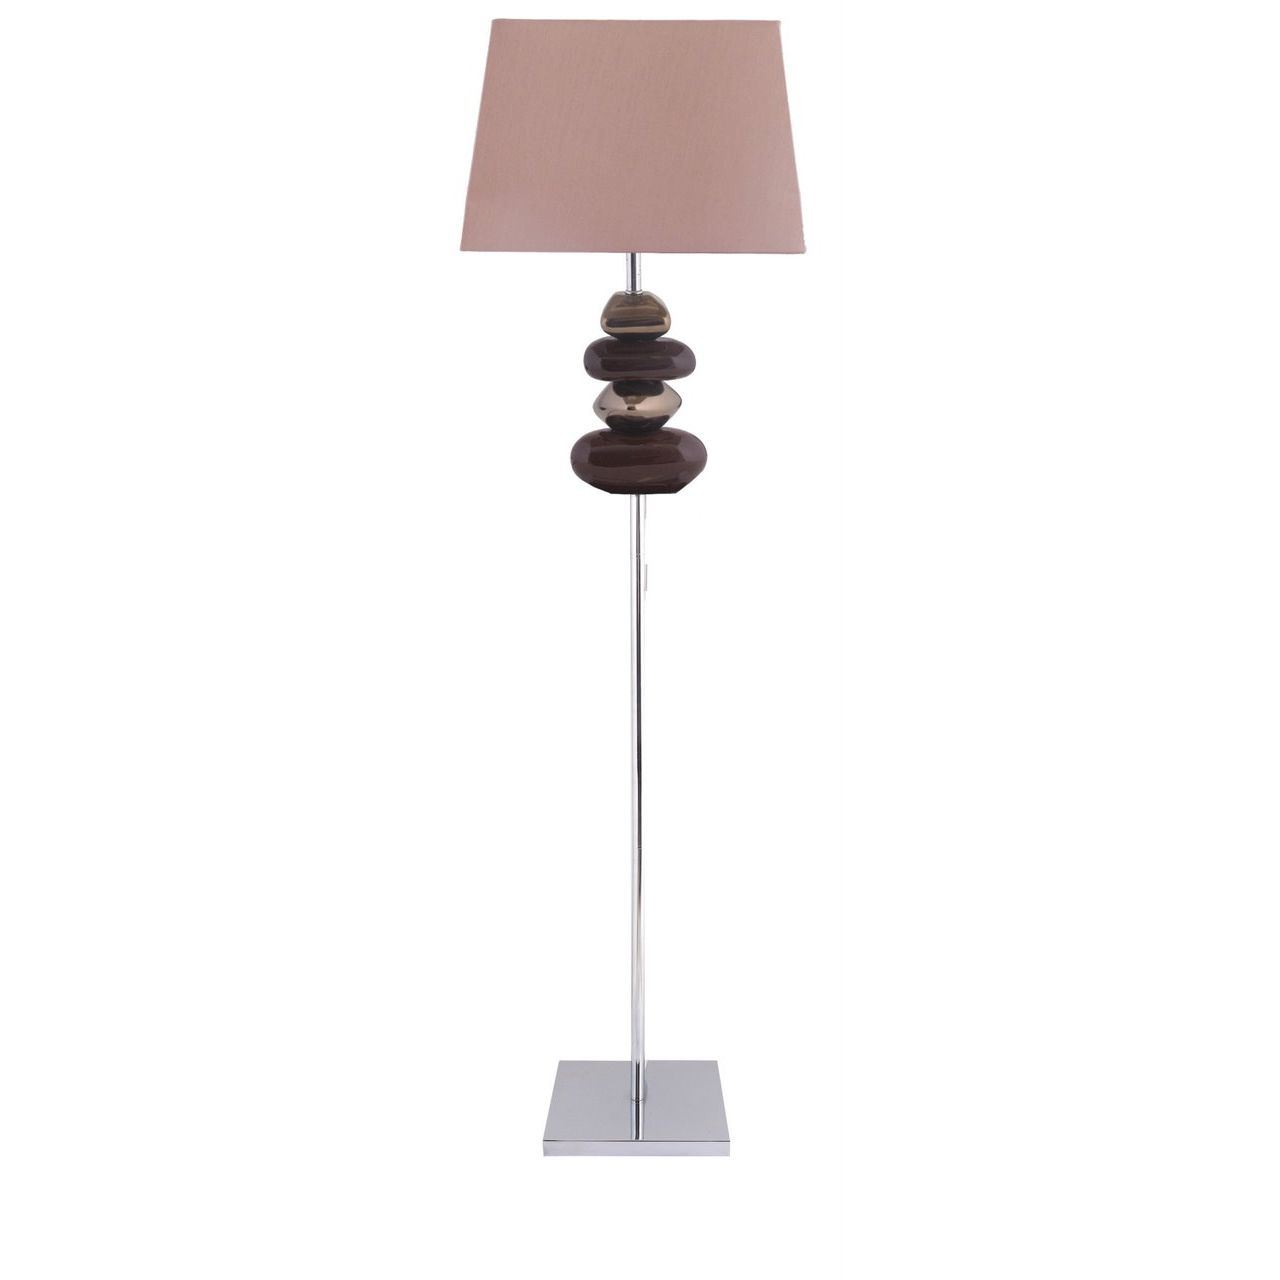 Chocolate And Bronze Pebble Floor Lamp With 17 Inch Chocolate Shade